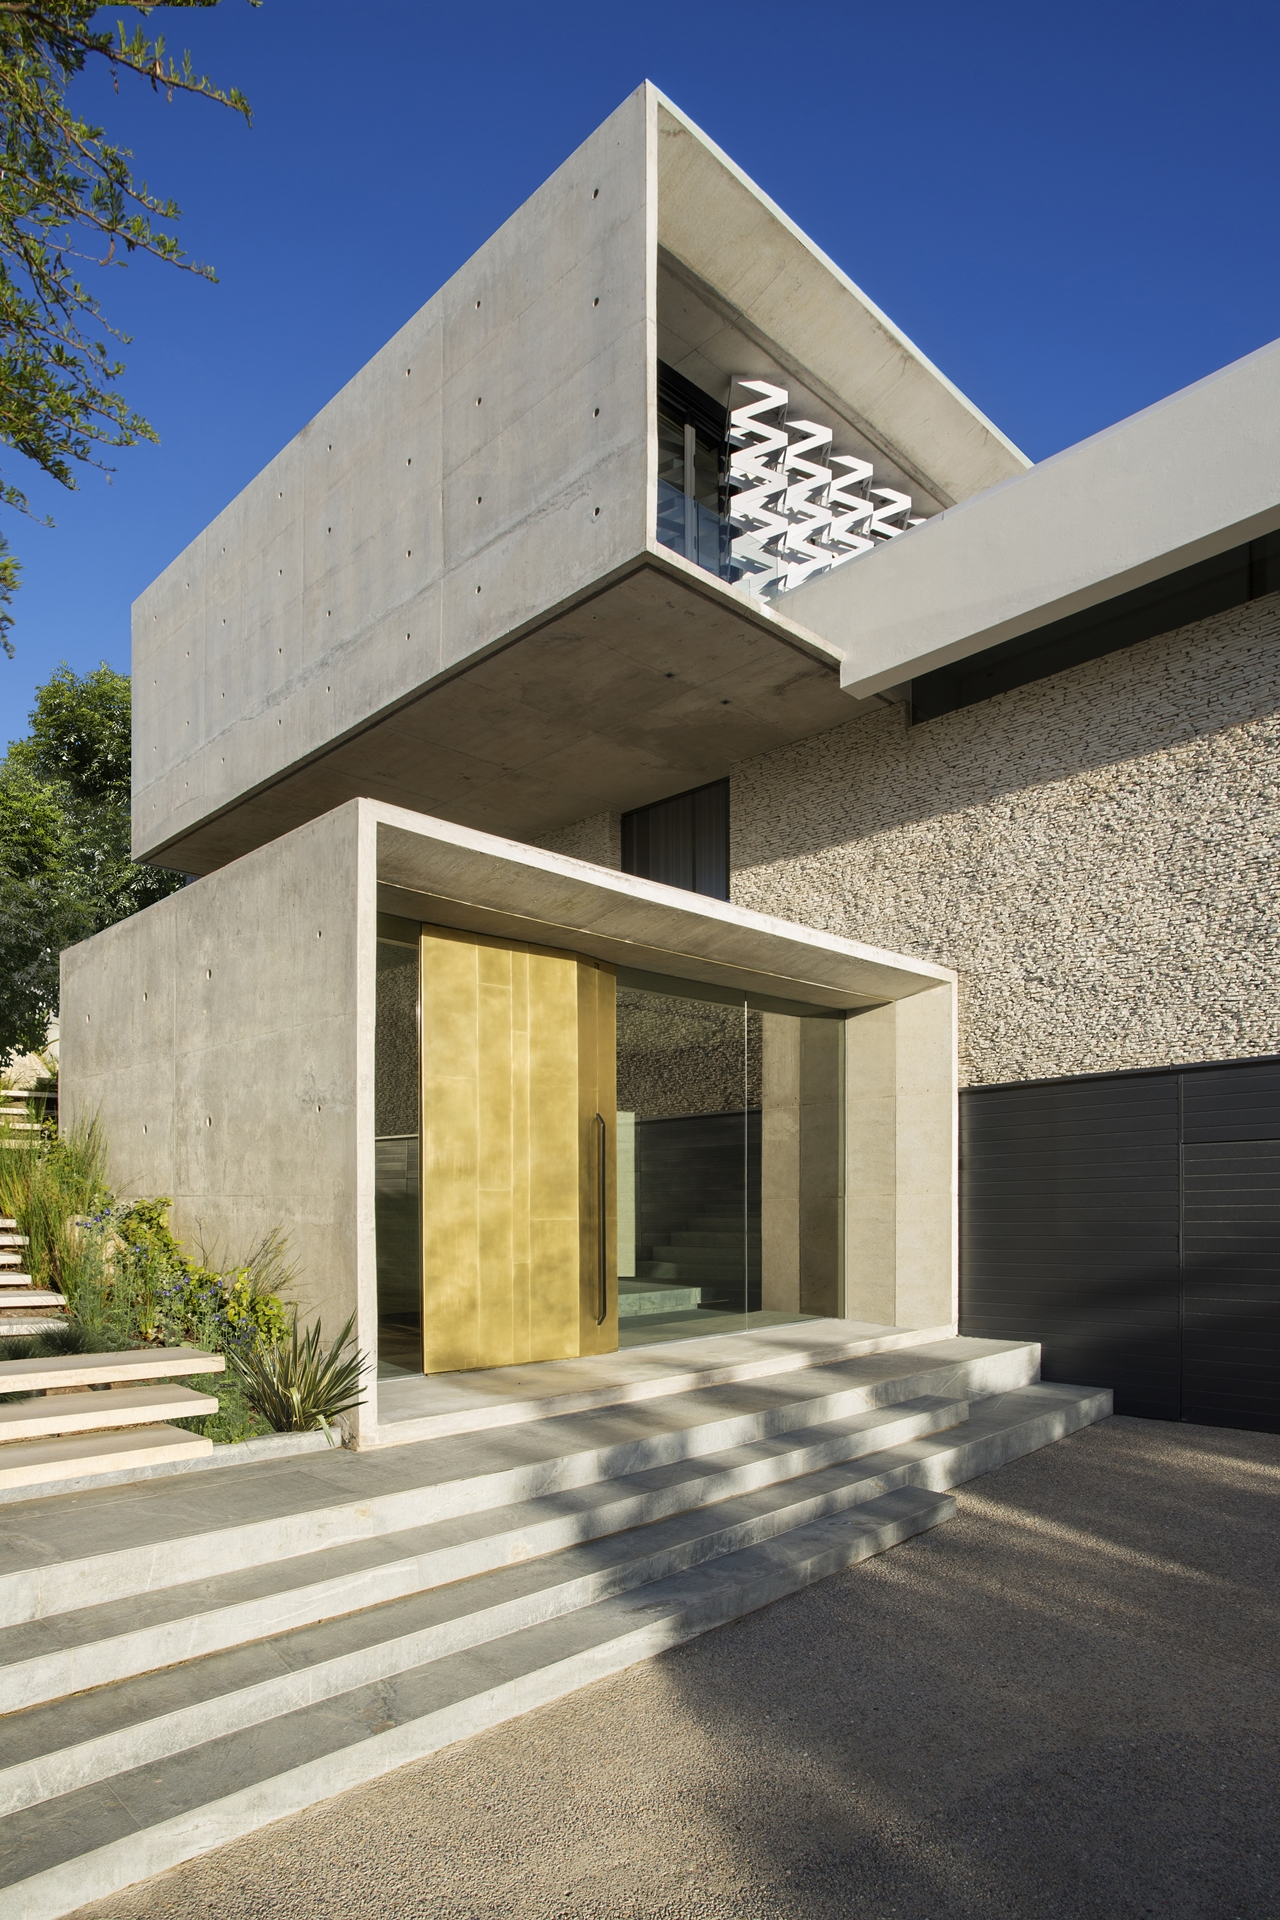 Entrance to the modern home